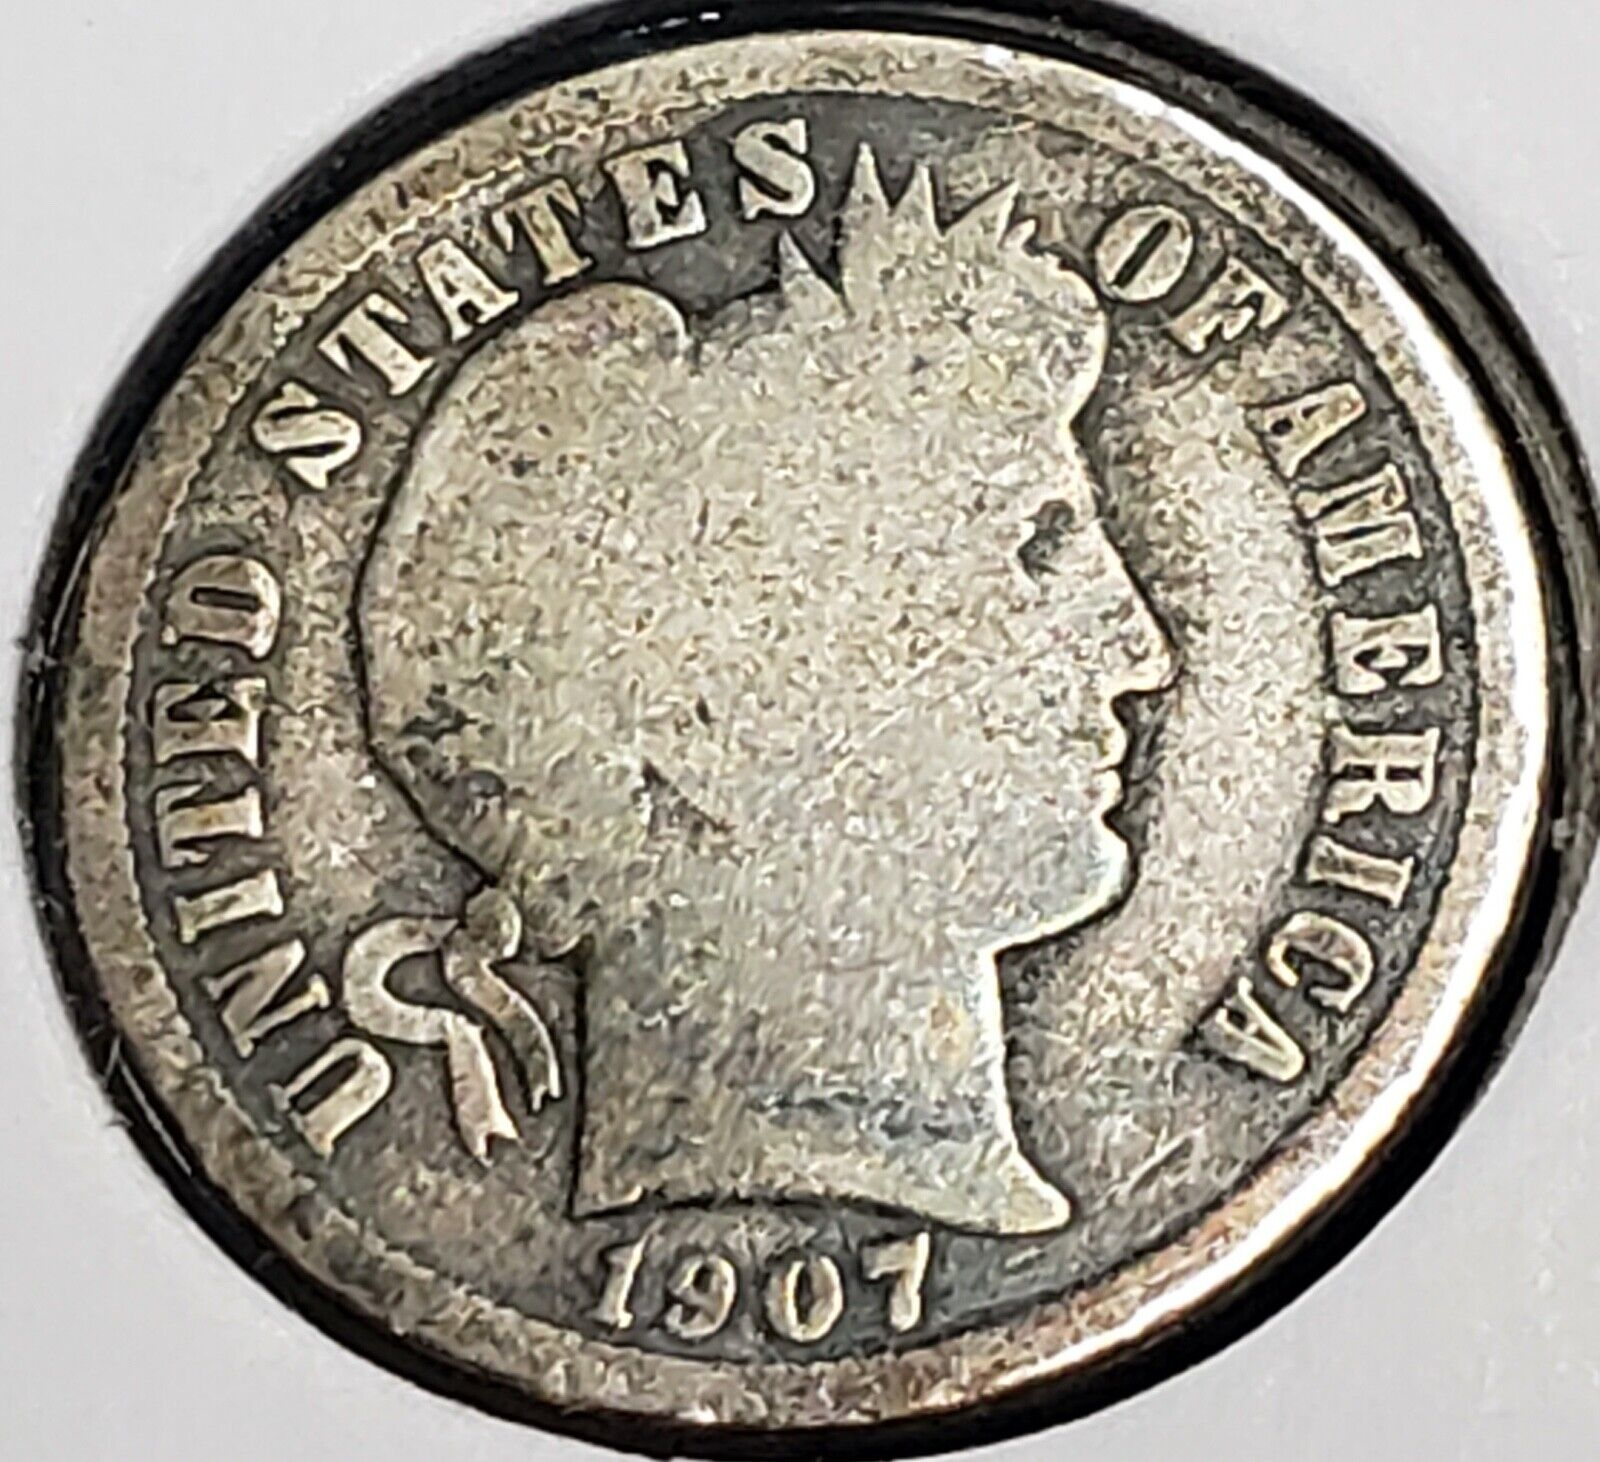 US Silver Dime 1907 S Barber G  - $1.10